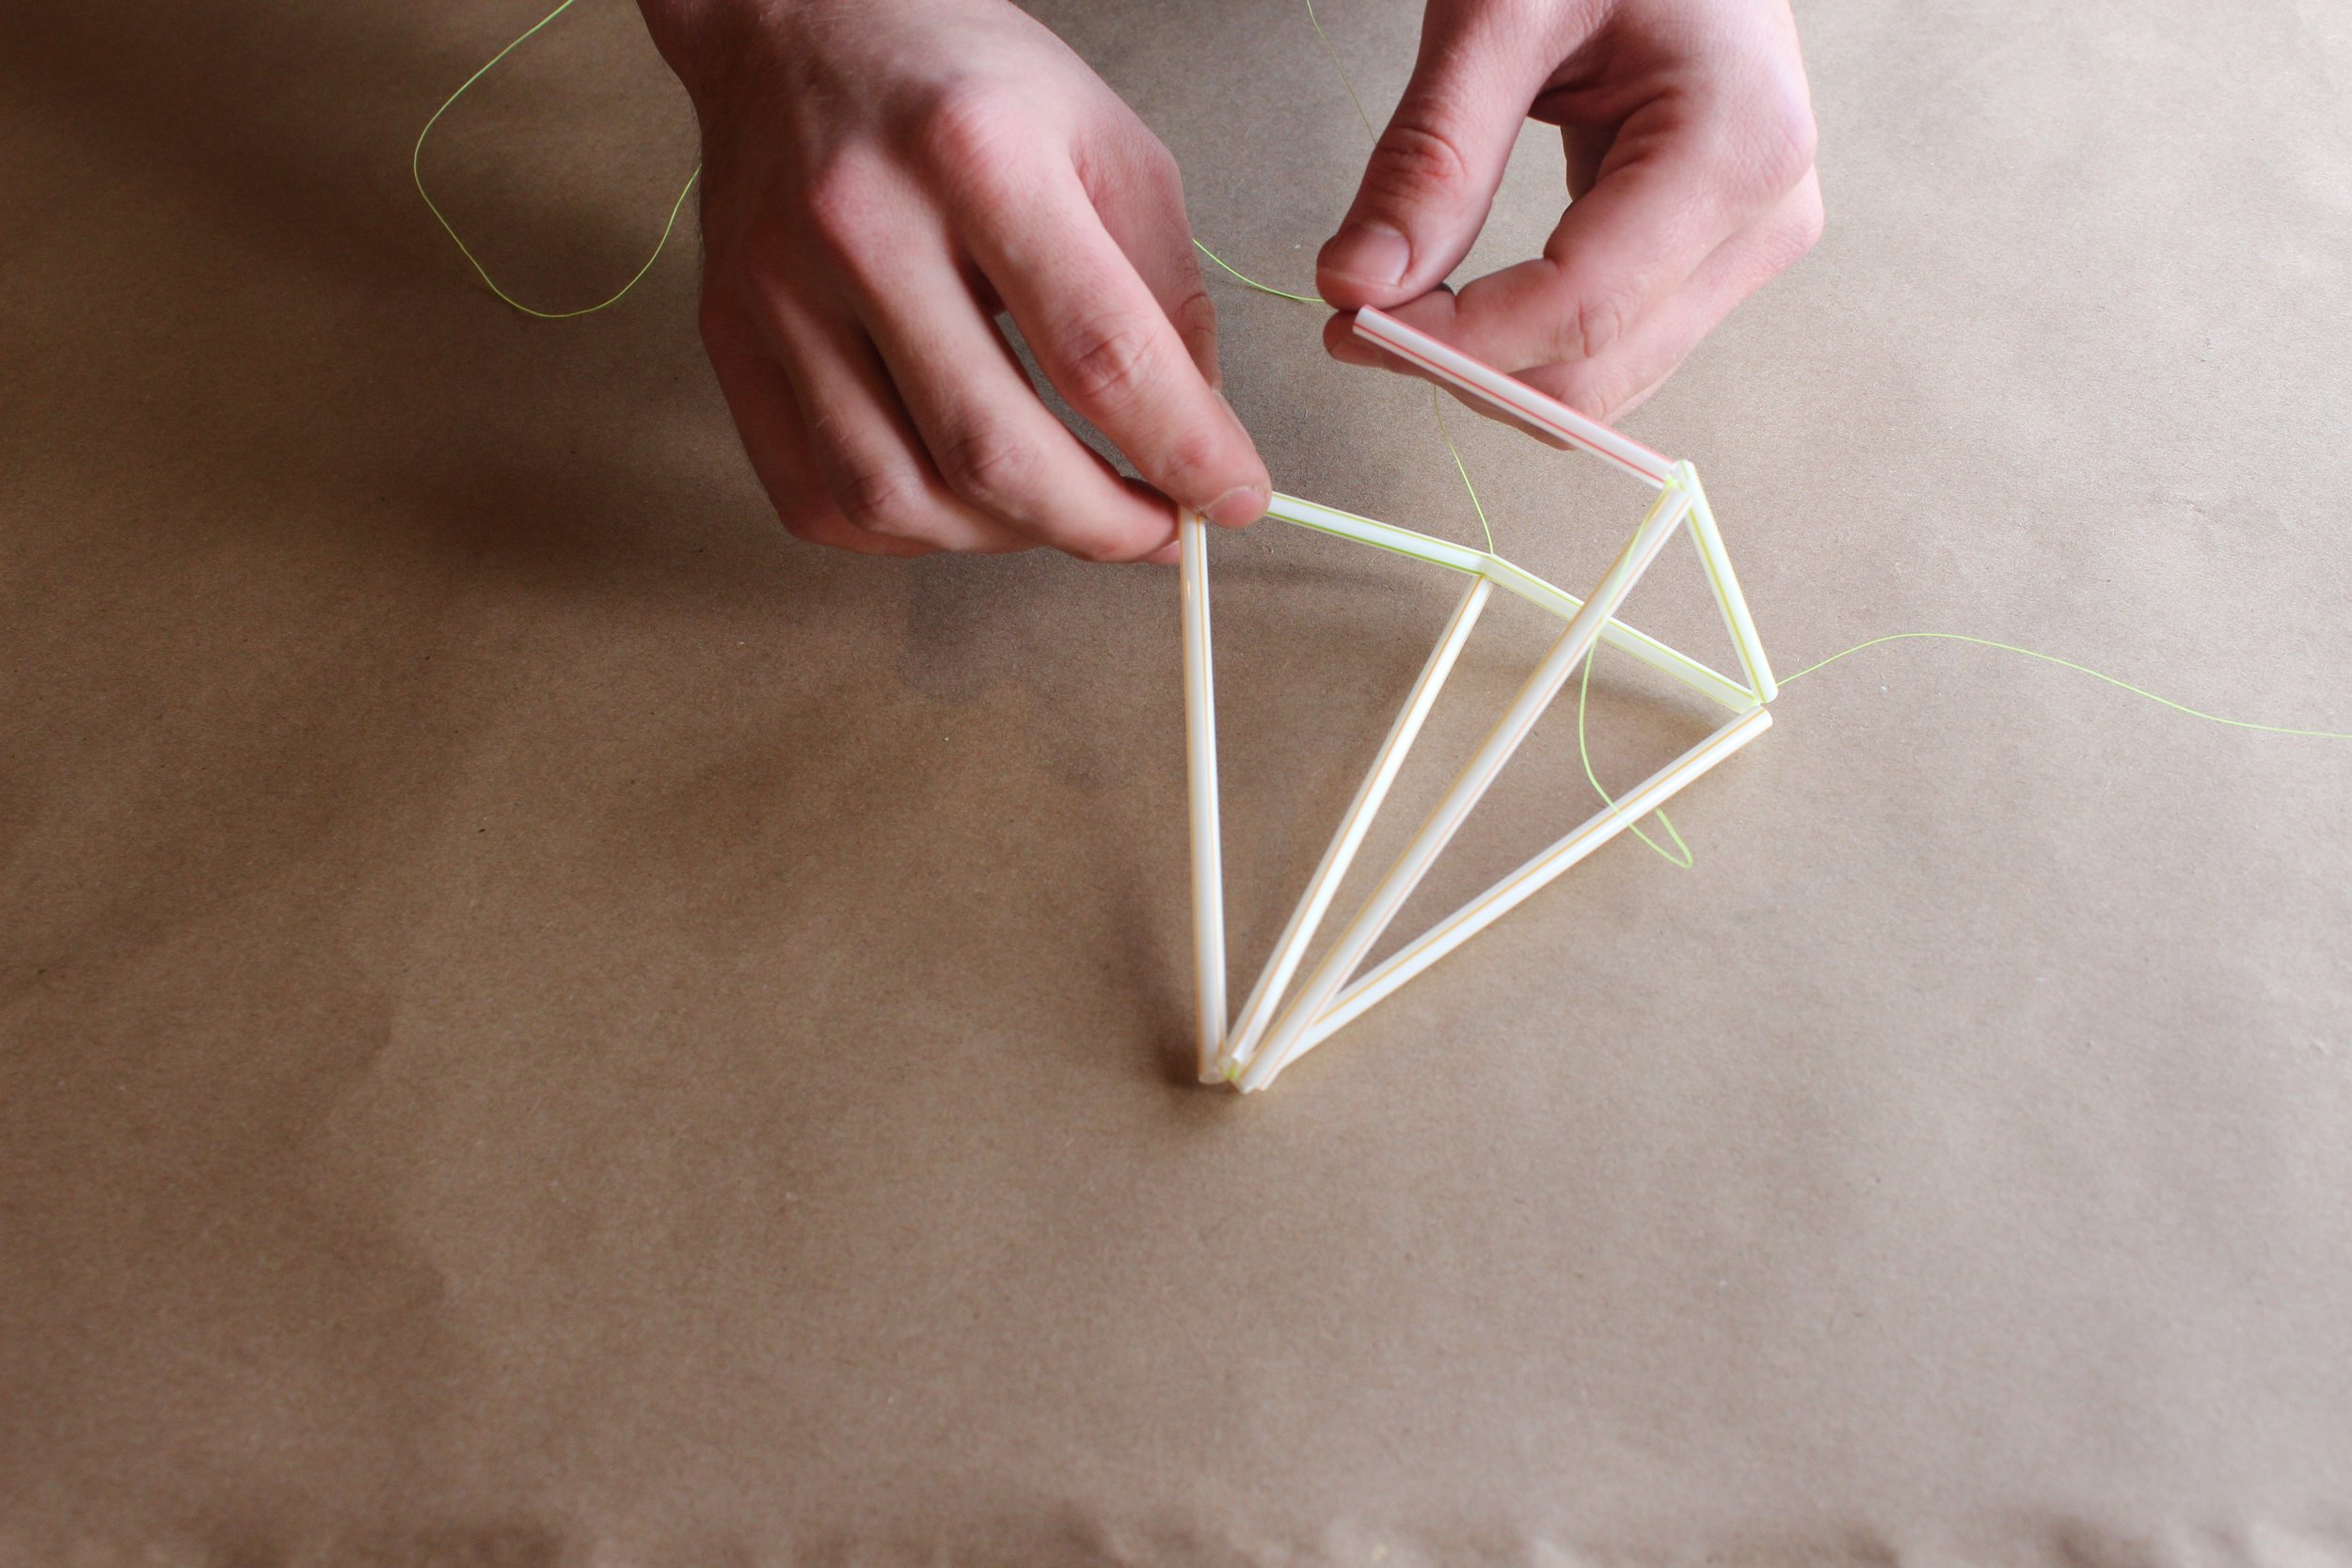 Step 7.) Attach the newest 2.5 inch straw on the left, to the bottom triangle piece on the right creating a square at the base.